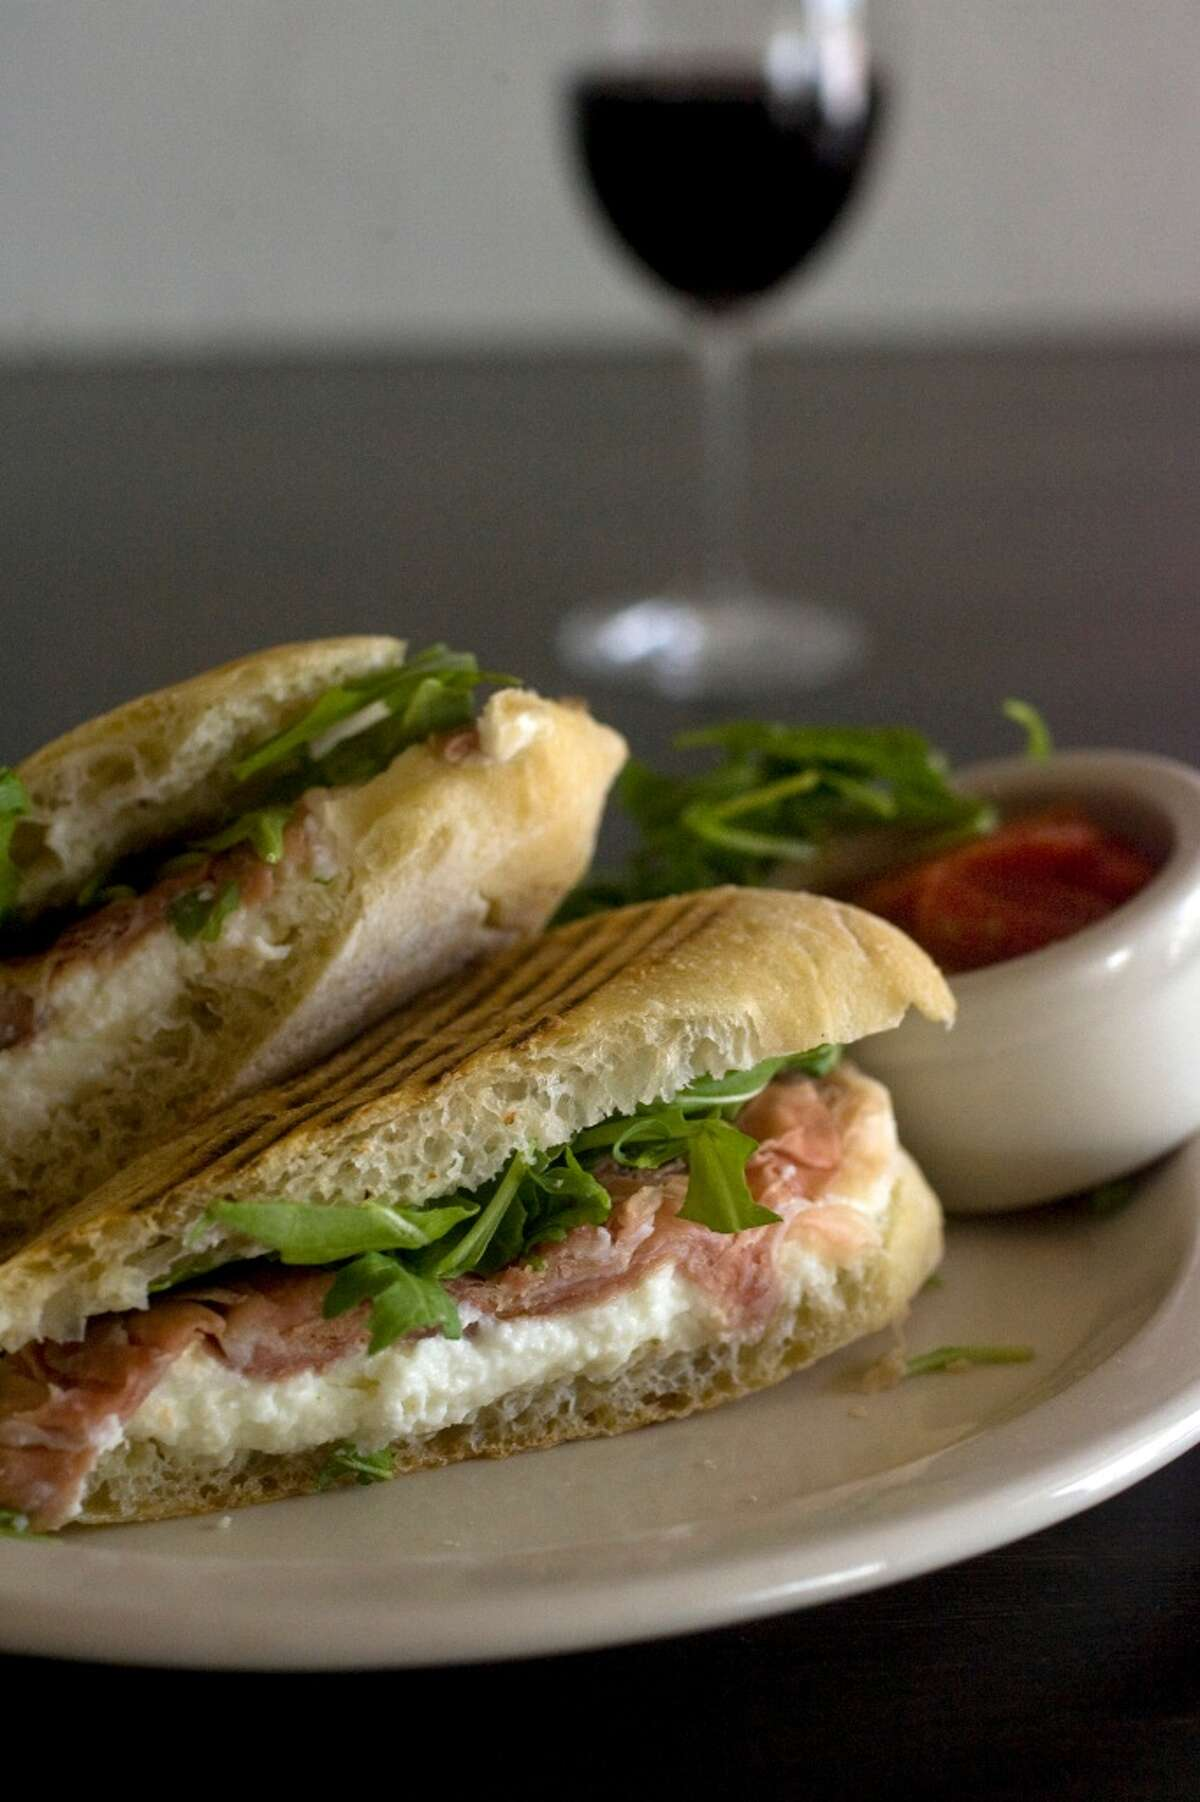 Panini with prosciutto, mozzarella and arugula at Vinoteca Poscol.